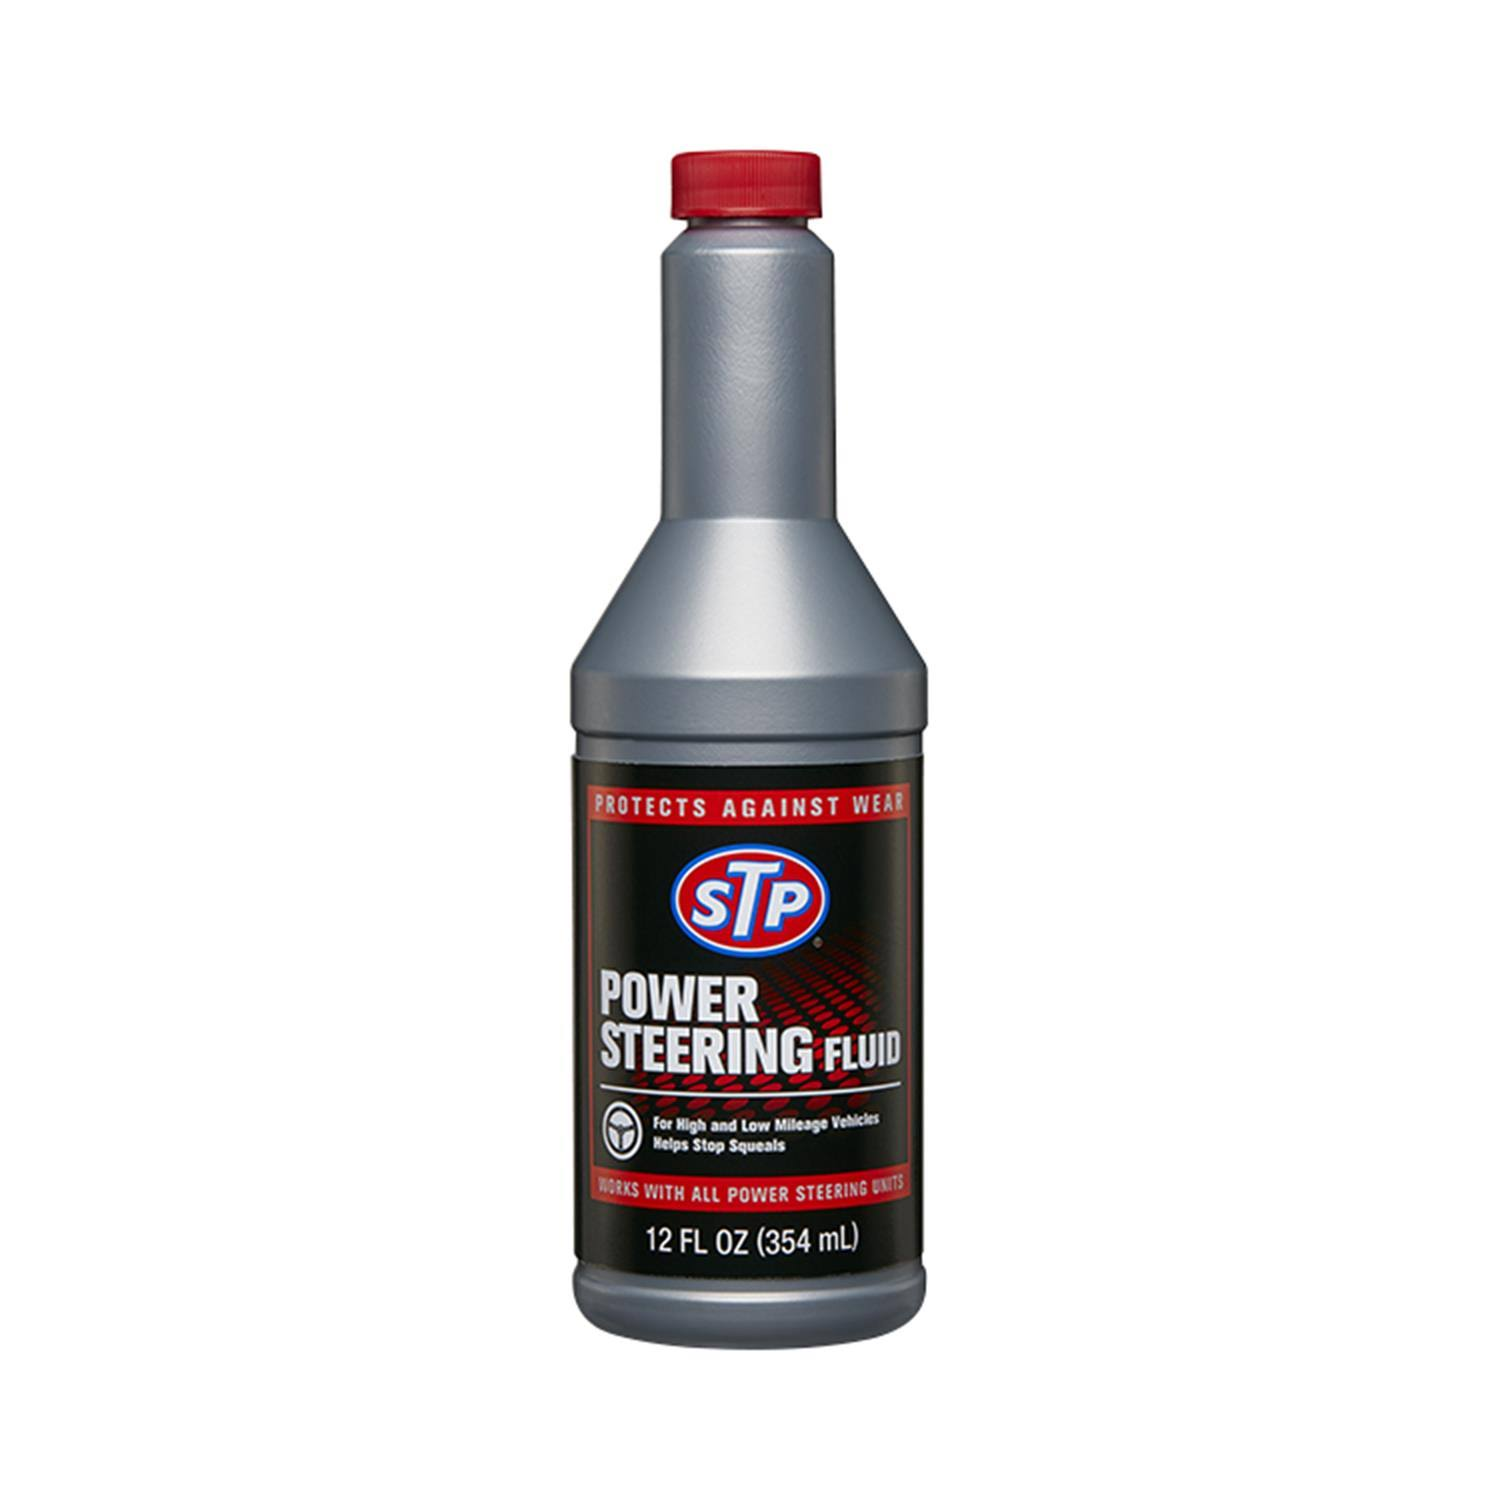 STP Power Steering Fluid - 12 fl oz bottle